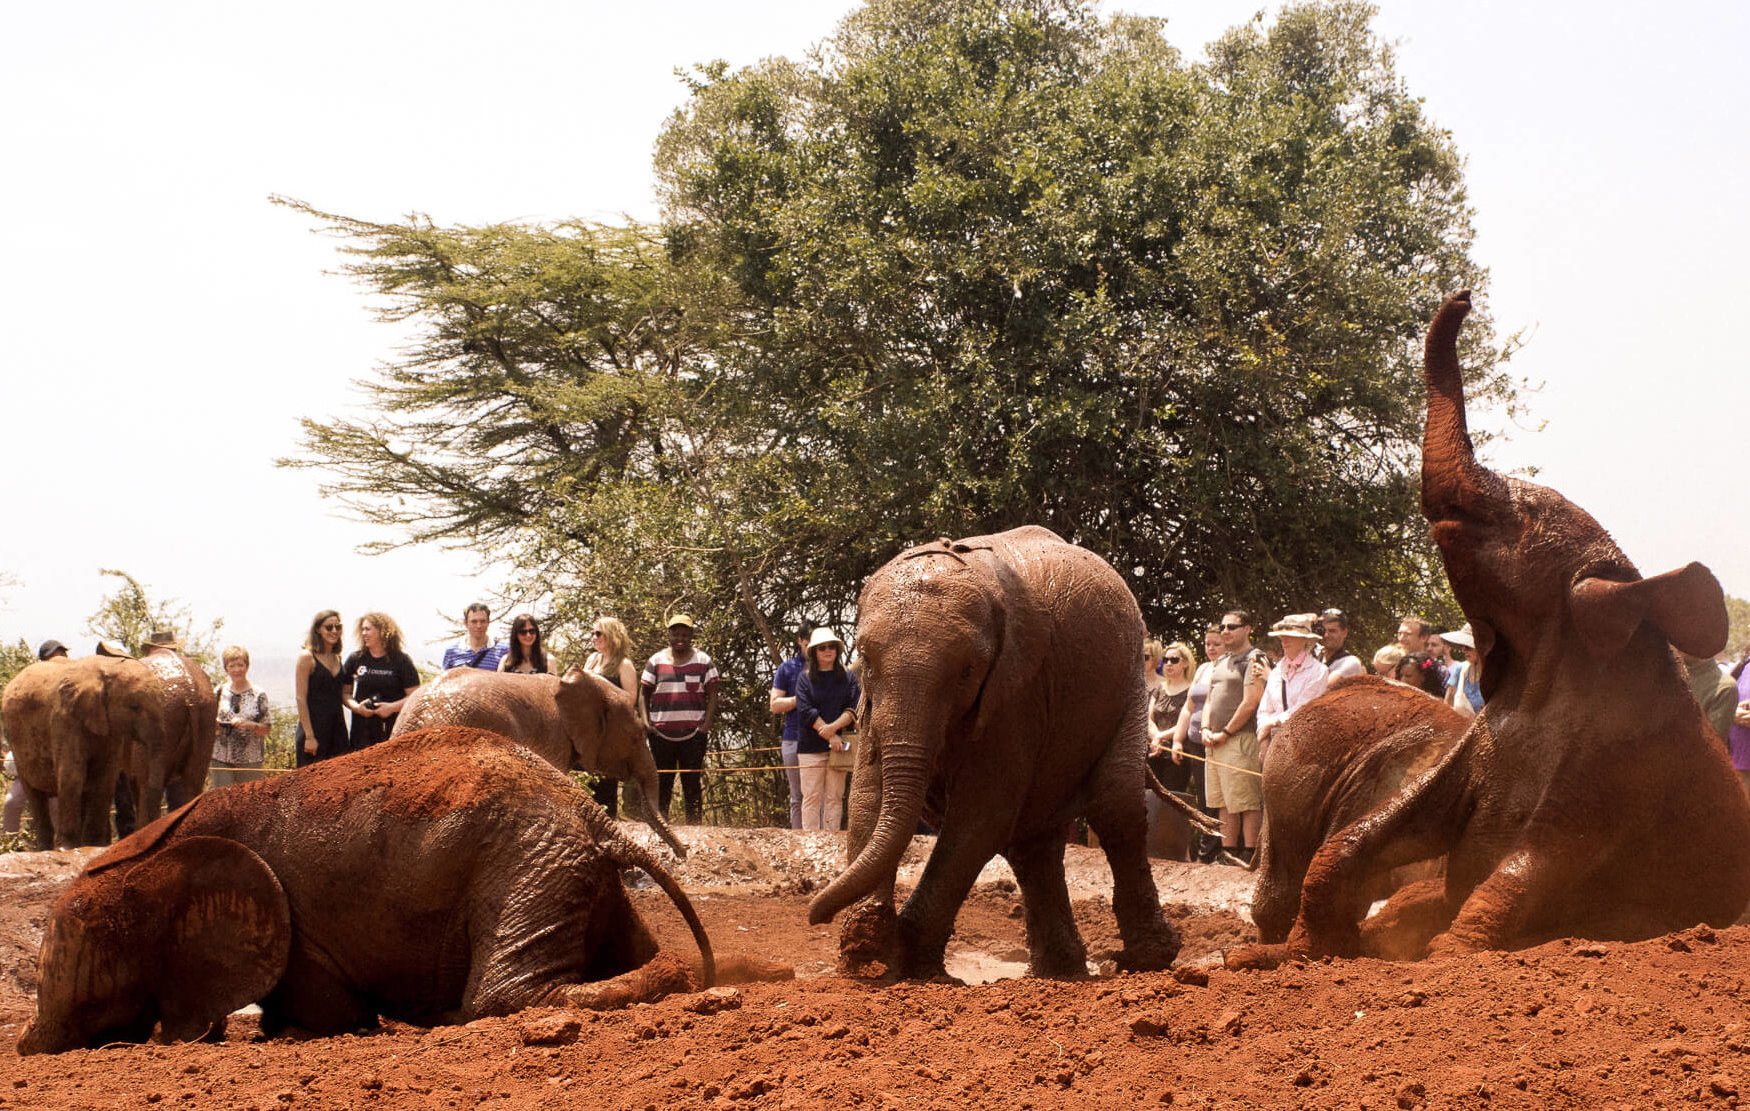 A group of baby elephants playing in a mud bath with a crowd of people watching behind them